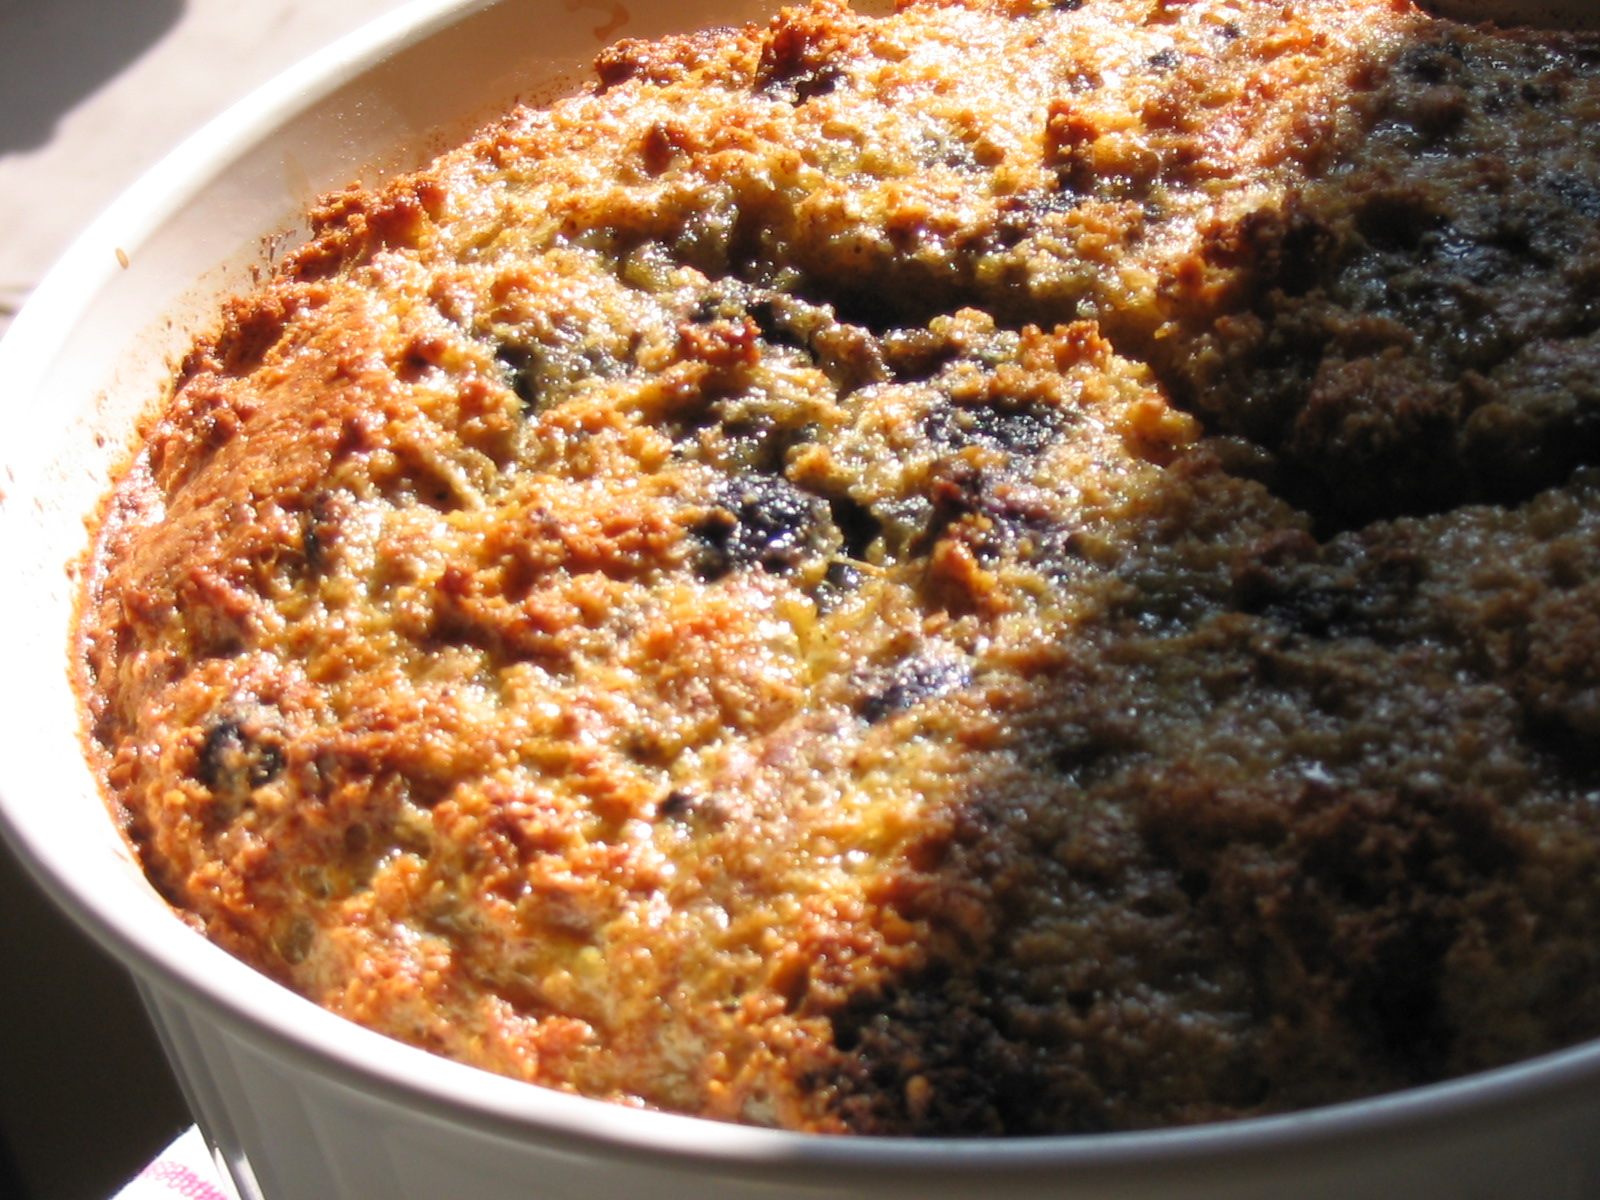 Cornmeal Blueberry Muffin Souffle